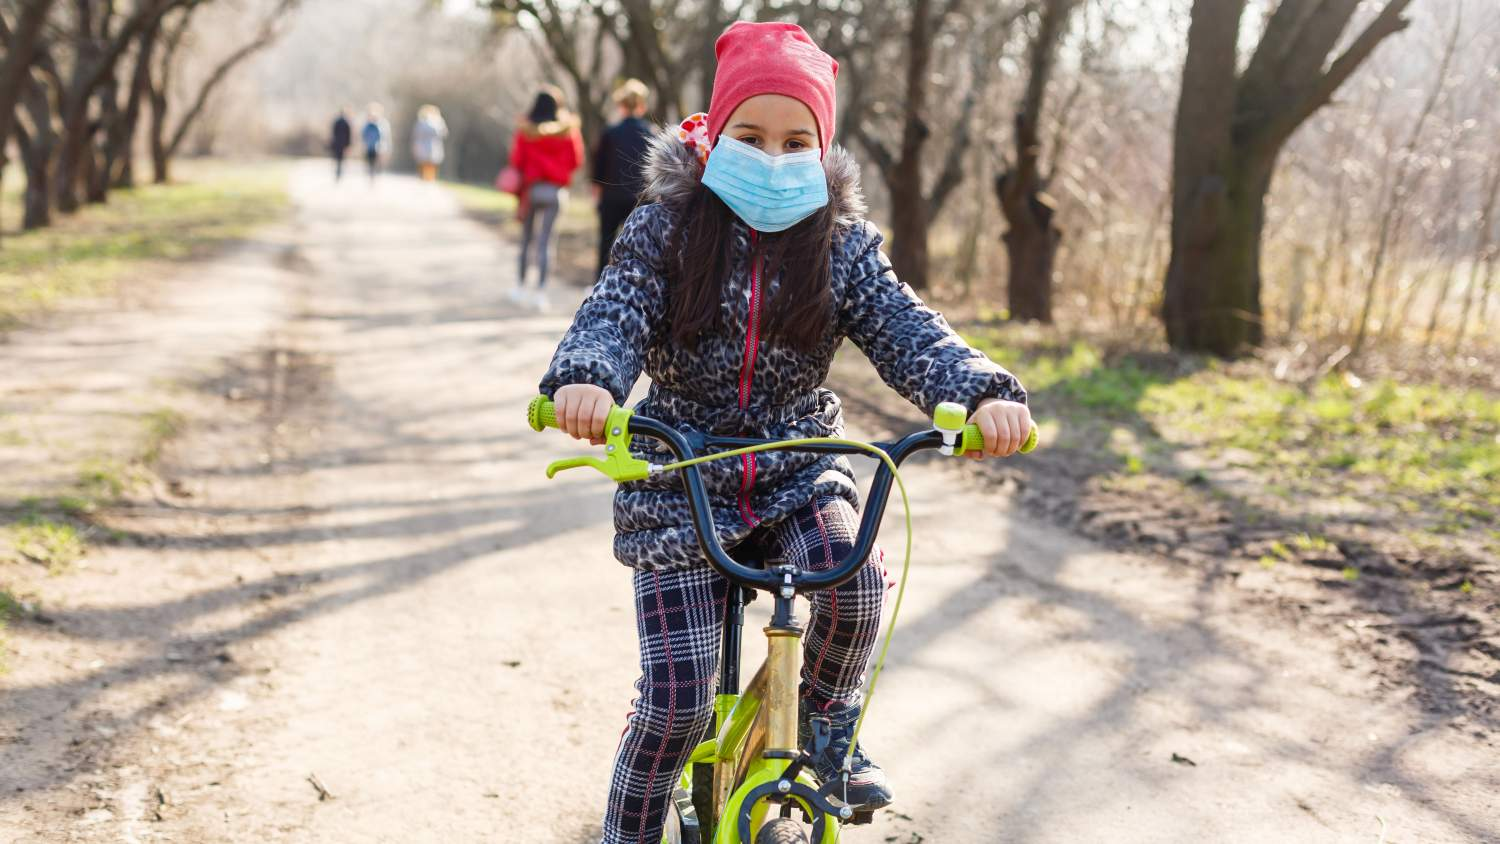 Girl with a mask on riding a bike